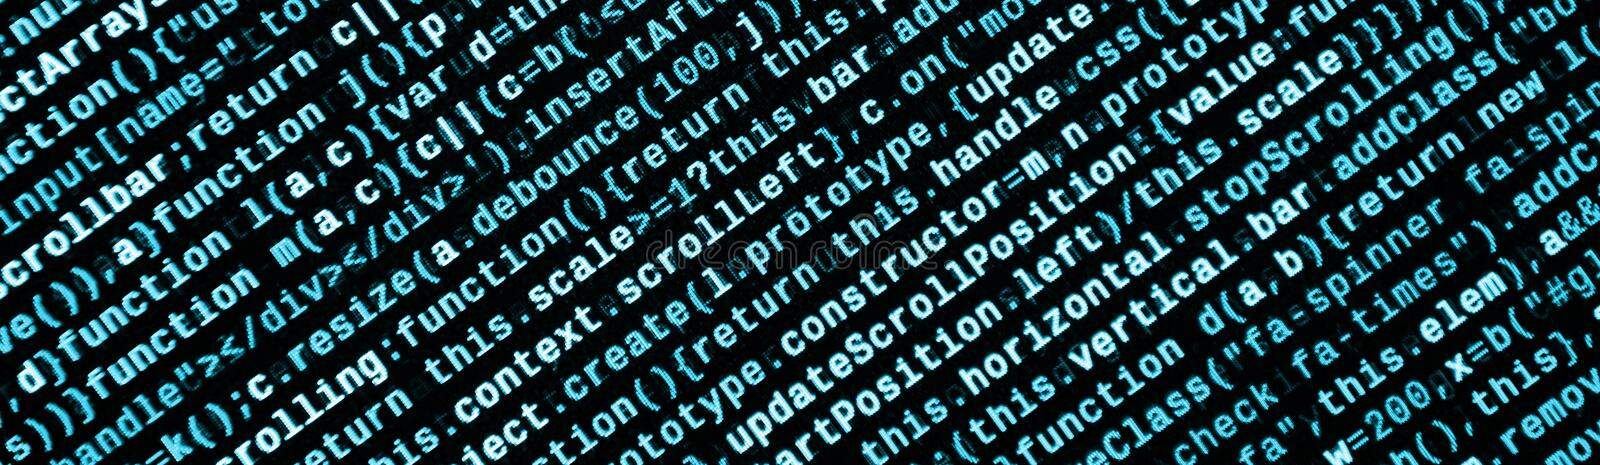 Big data and Internet of things trend. IT specialist workplace. Website HTML Code on the Laptop Display. Closeup Photo. Big data storage and cloud computing royalty free stock image